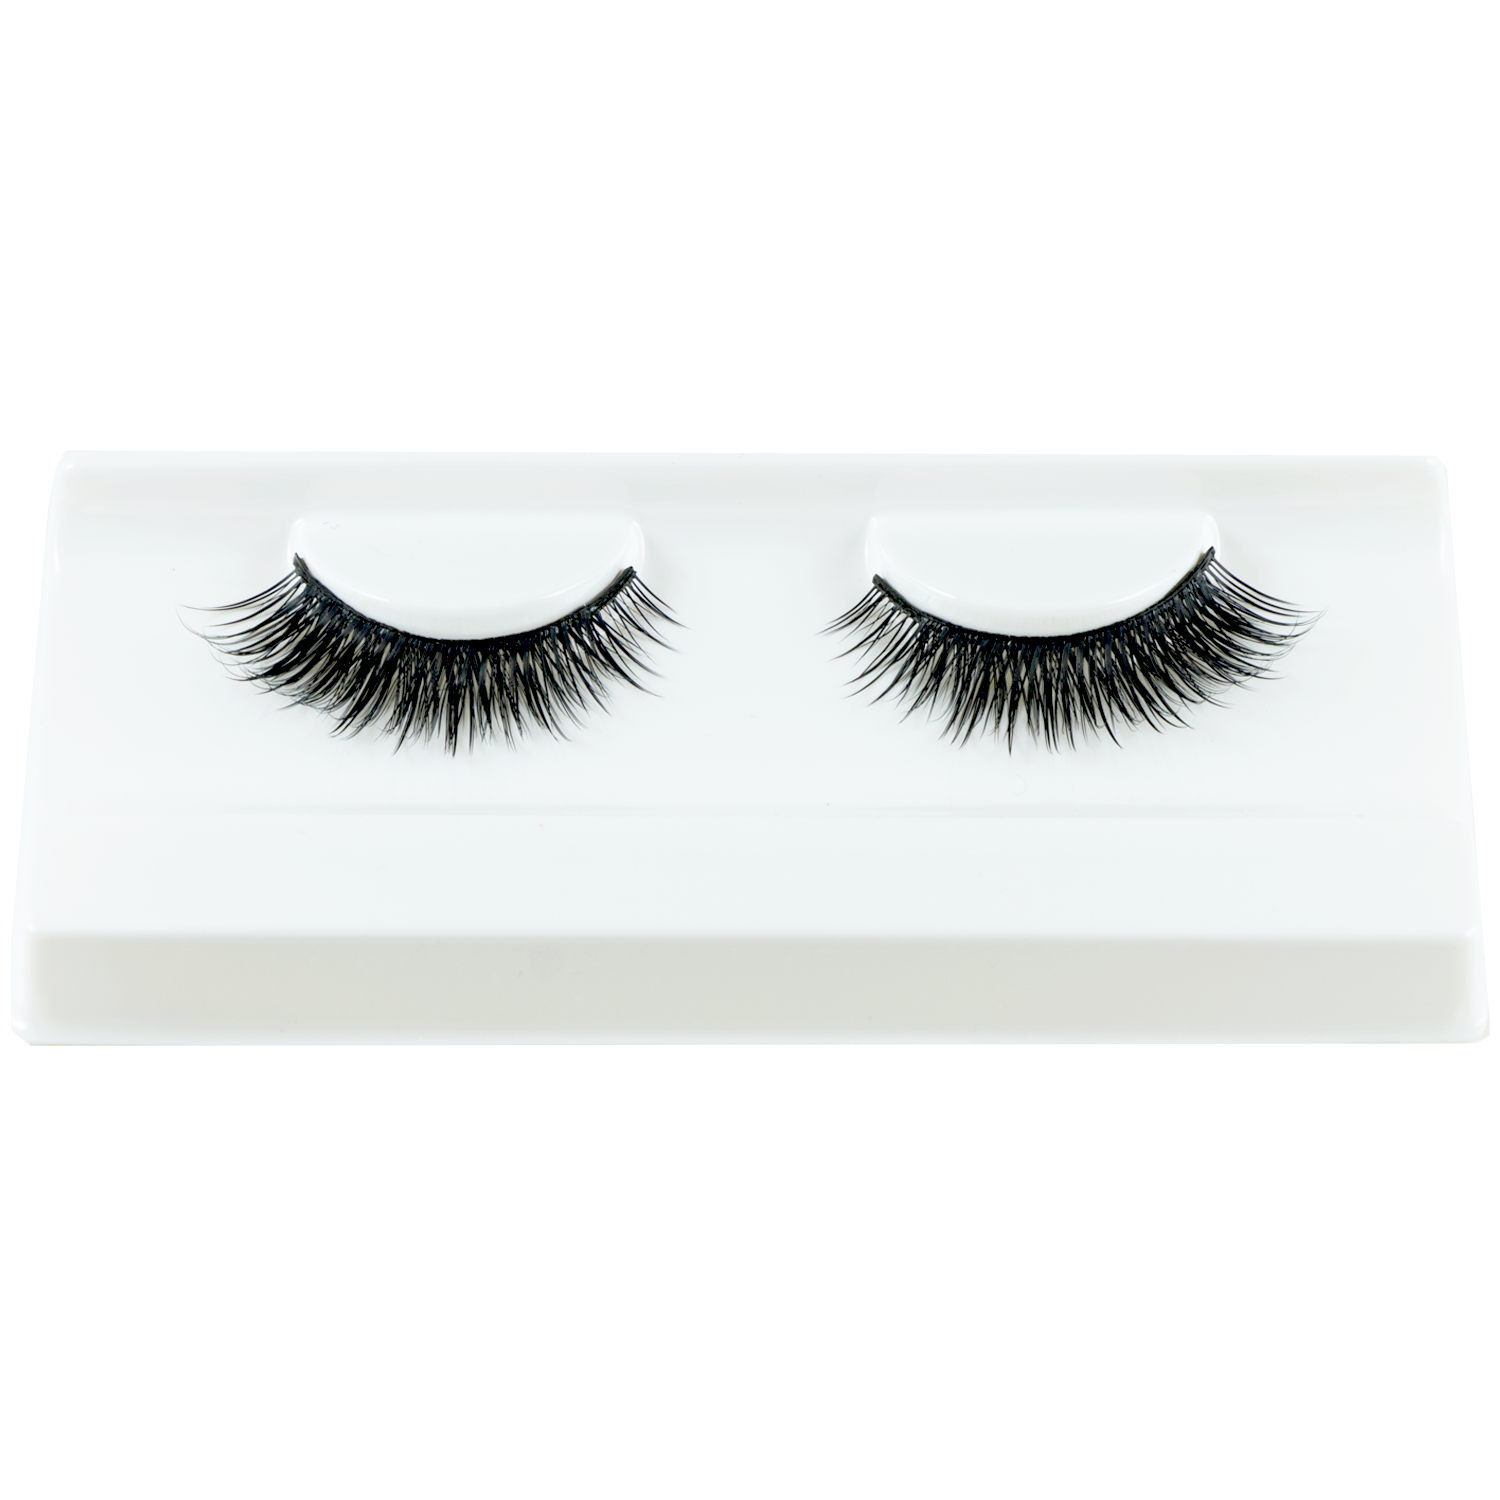 Closed eyelashes png. Charm lashes firma beauty